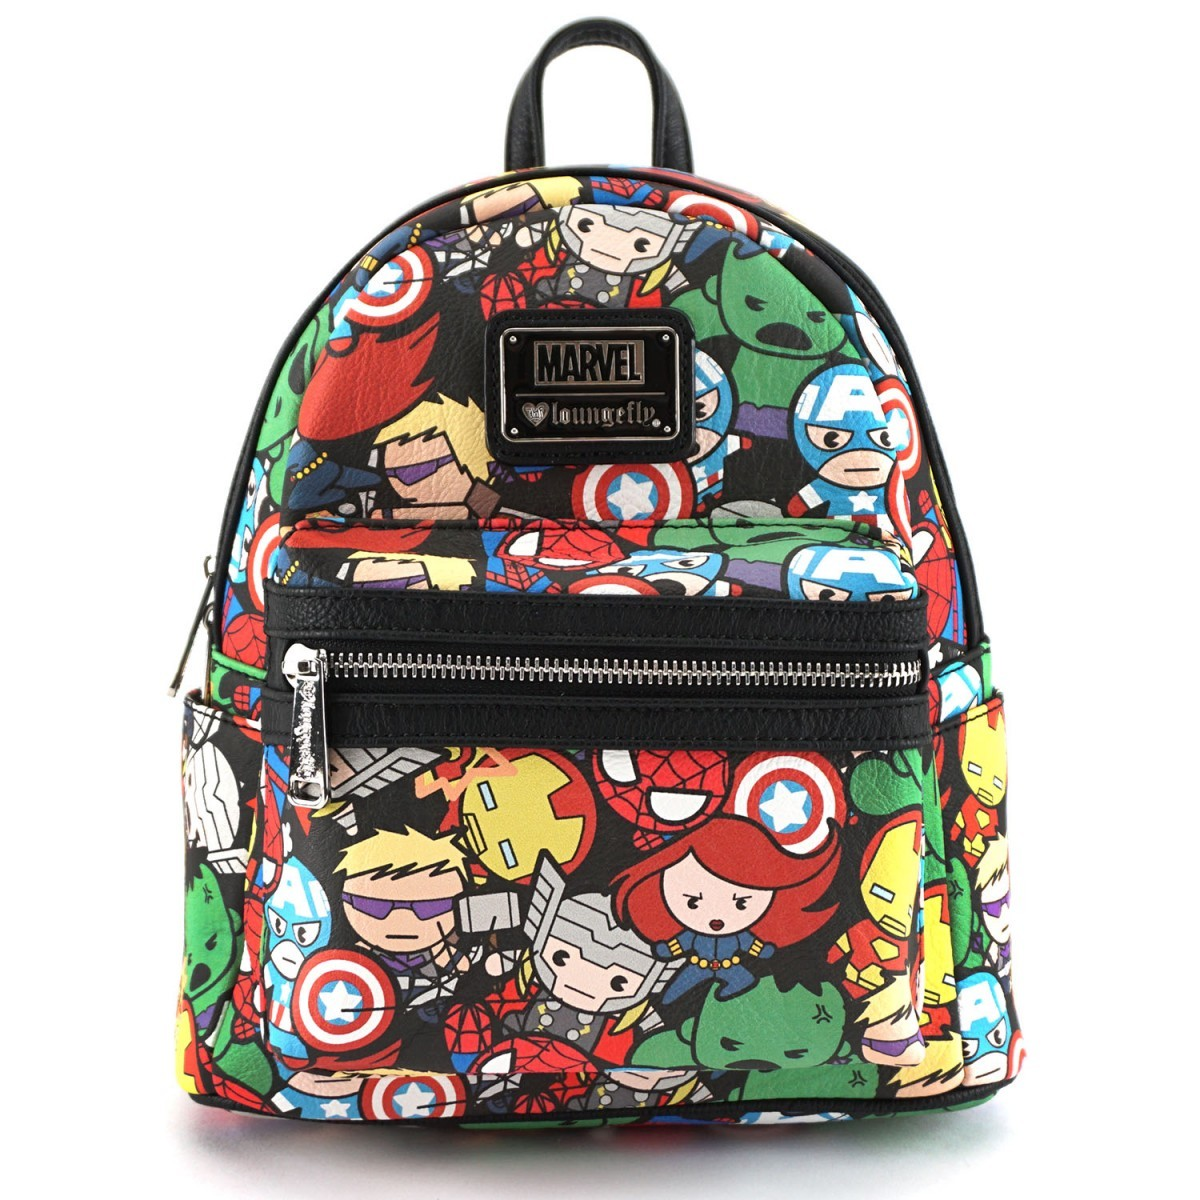 Loungefly Marvel Avengers Kawaii Print Mini Backpack image ... 36115f8c09a4f